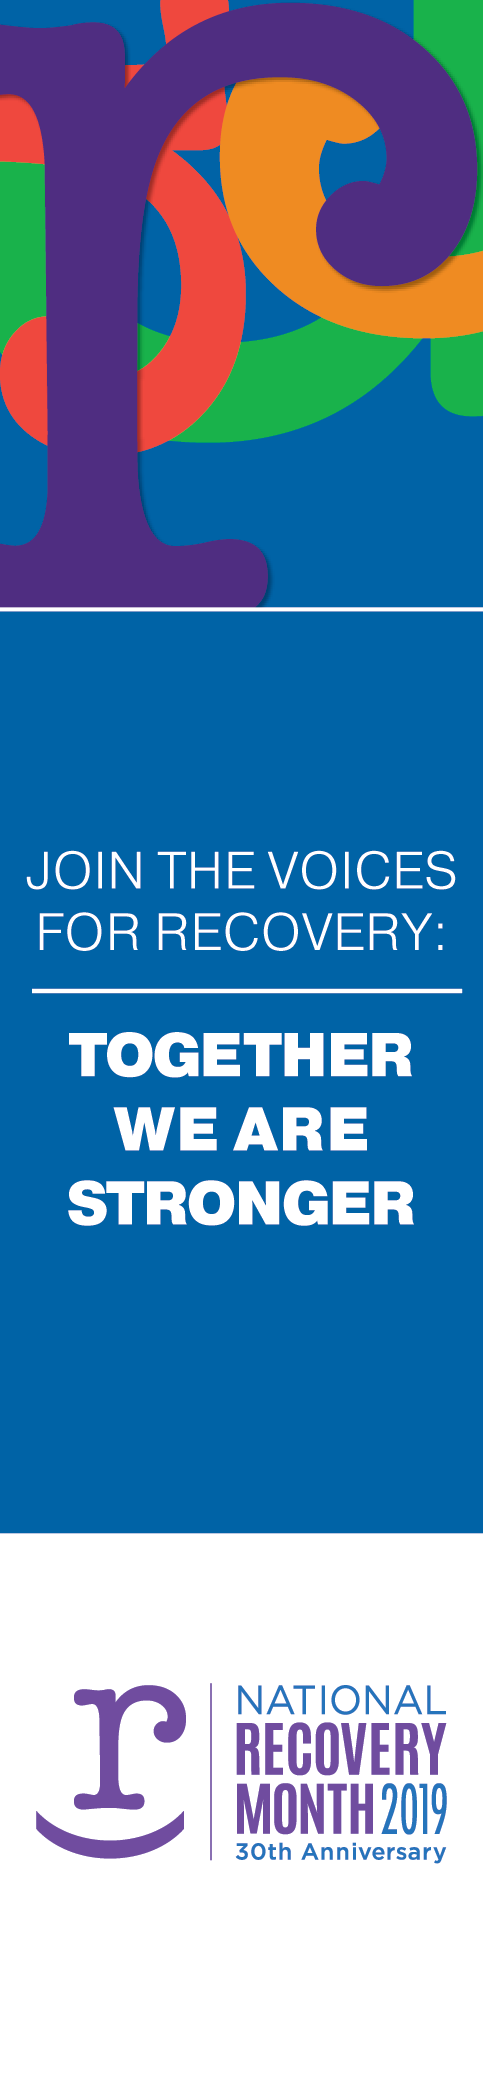 National Recovery Month. Join the Voices of Recovery: Together We Are Stronger. September 2019.